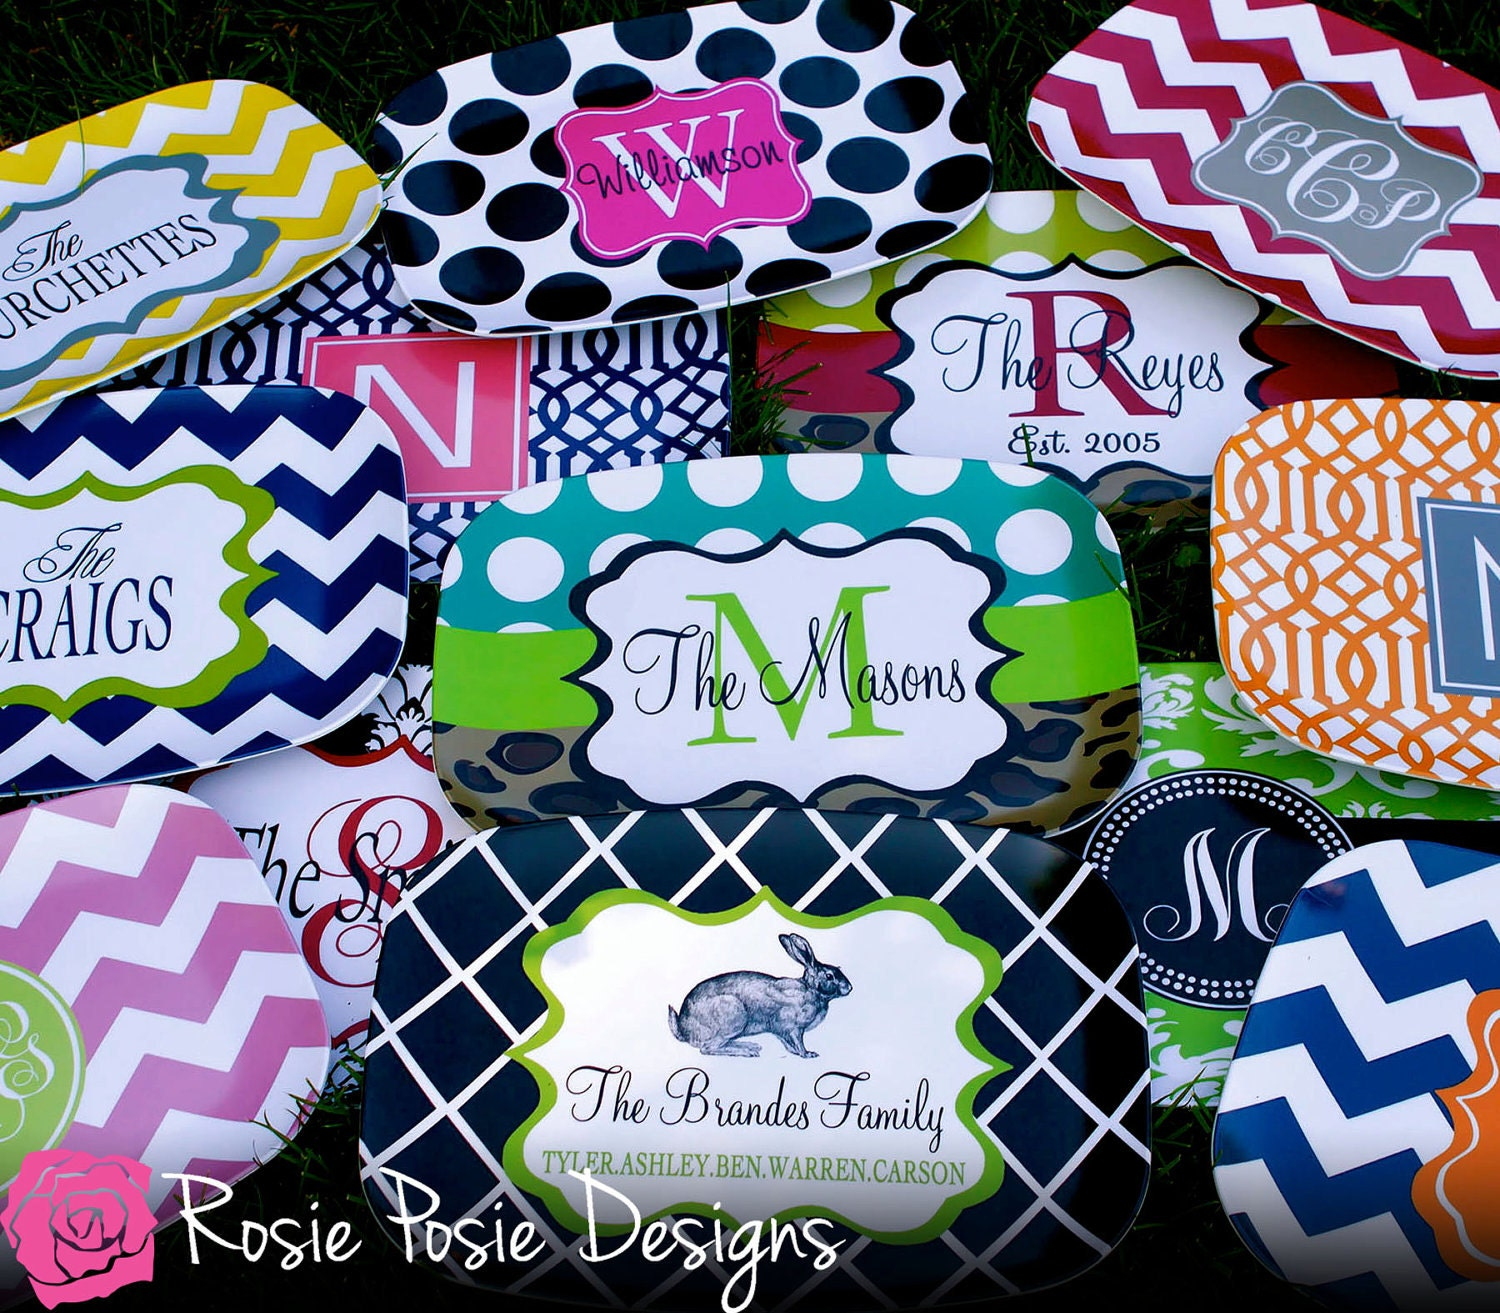 Personalized Melamine Platter-Design Your Own